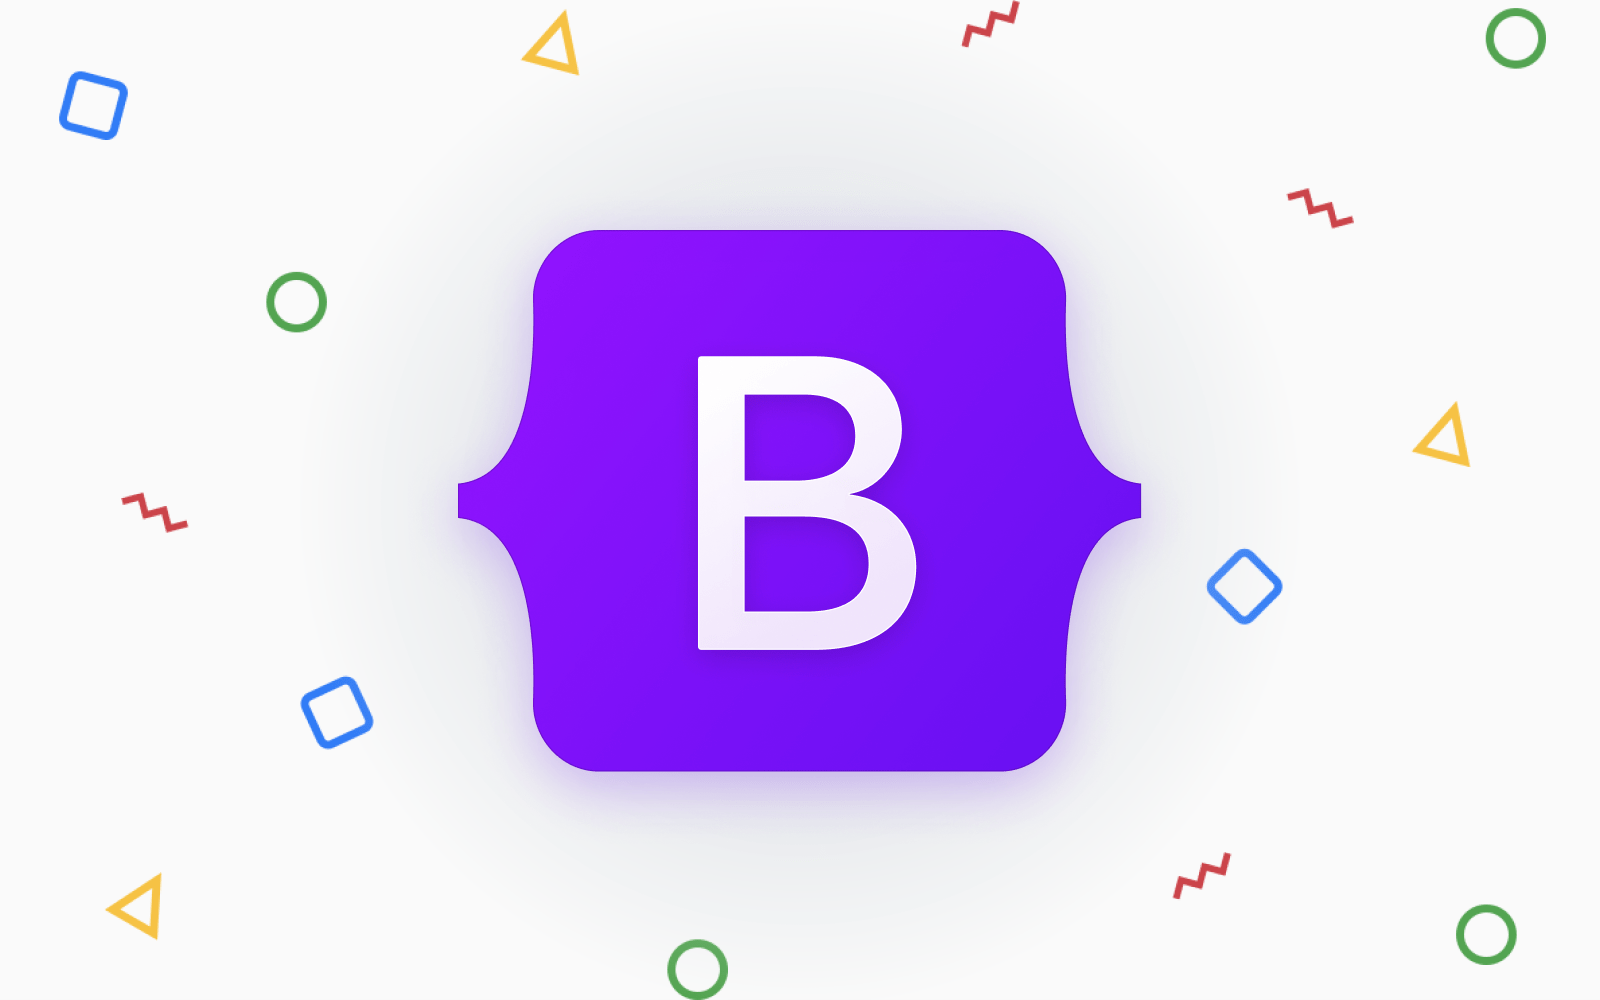 Bootstrap 5 is here with new utilities and improved customization